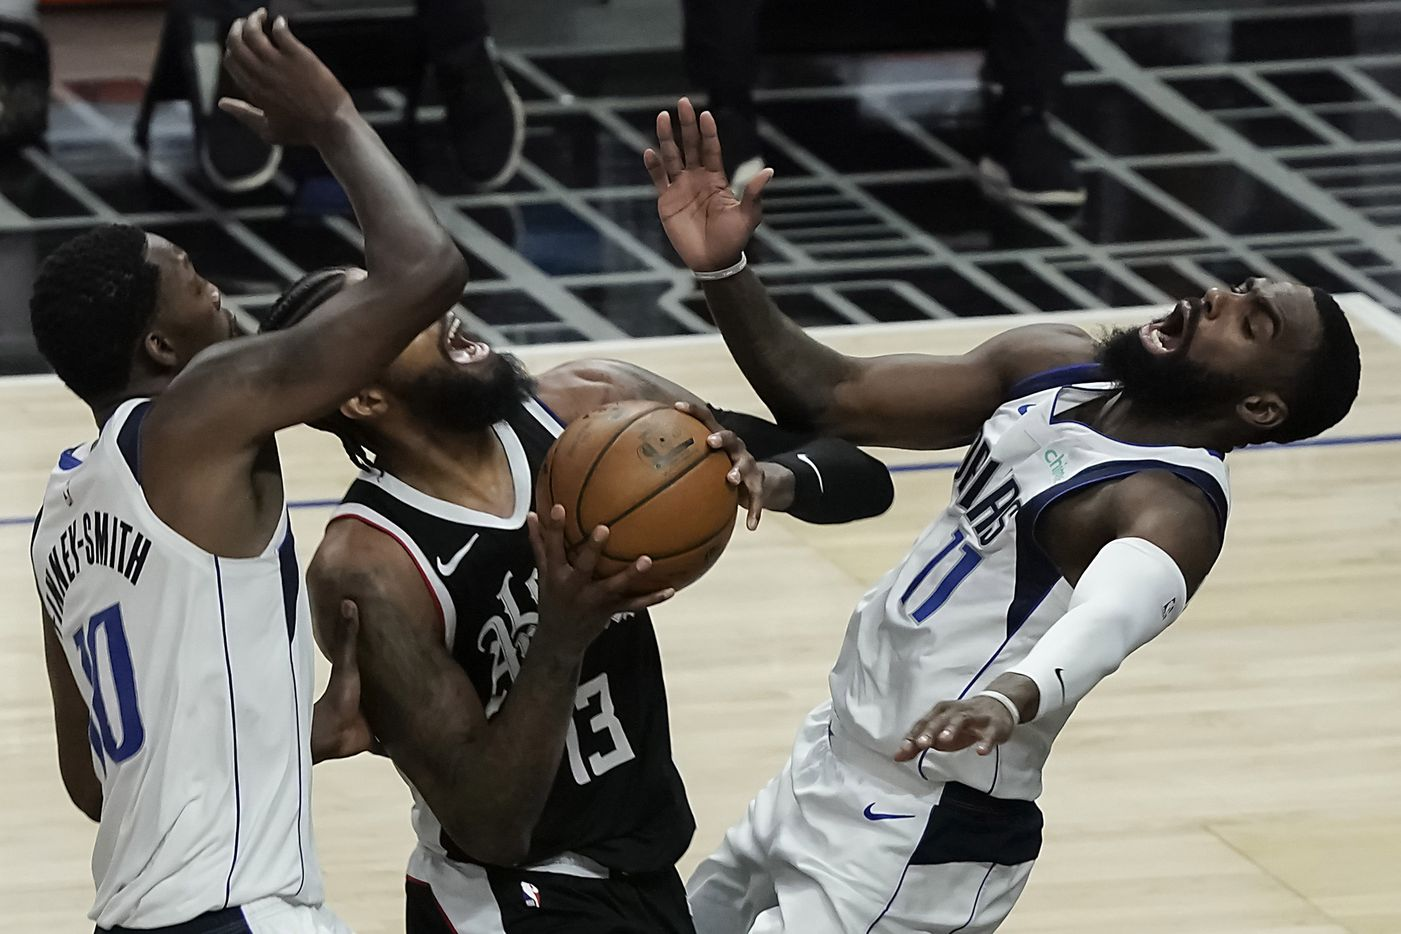 Dallas Mavericks forward Tim Hardaway Jr. (11) draws a charge from LA Clippers guard Paul George (13) during the second half of an NBA playoff basketball game at Staples Center on Saturday, May 22, 2021, in Los Angeles. The Mavericks won the game 113-103.